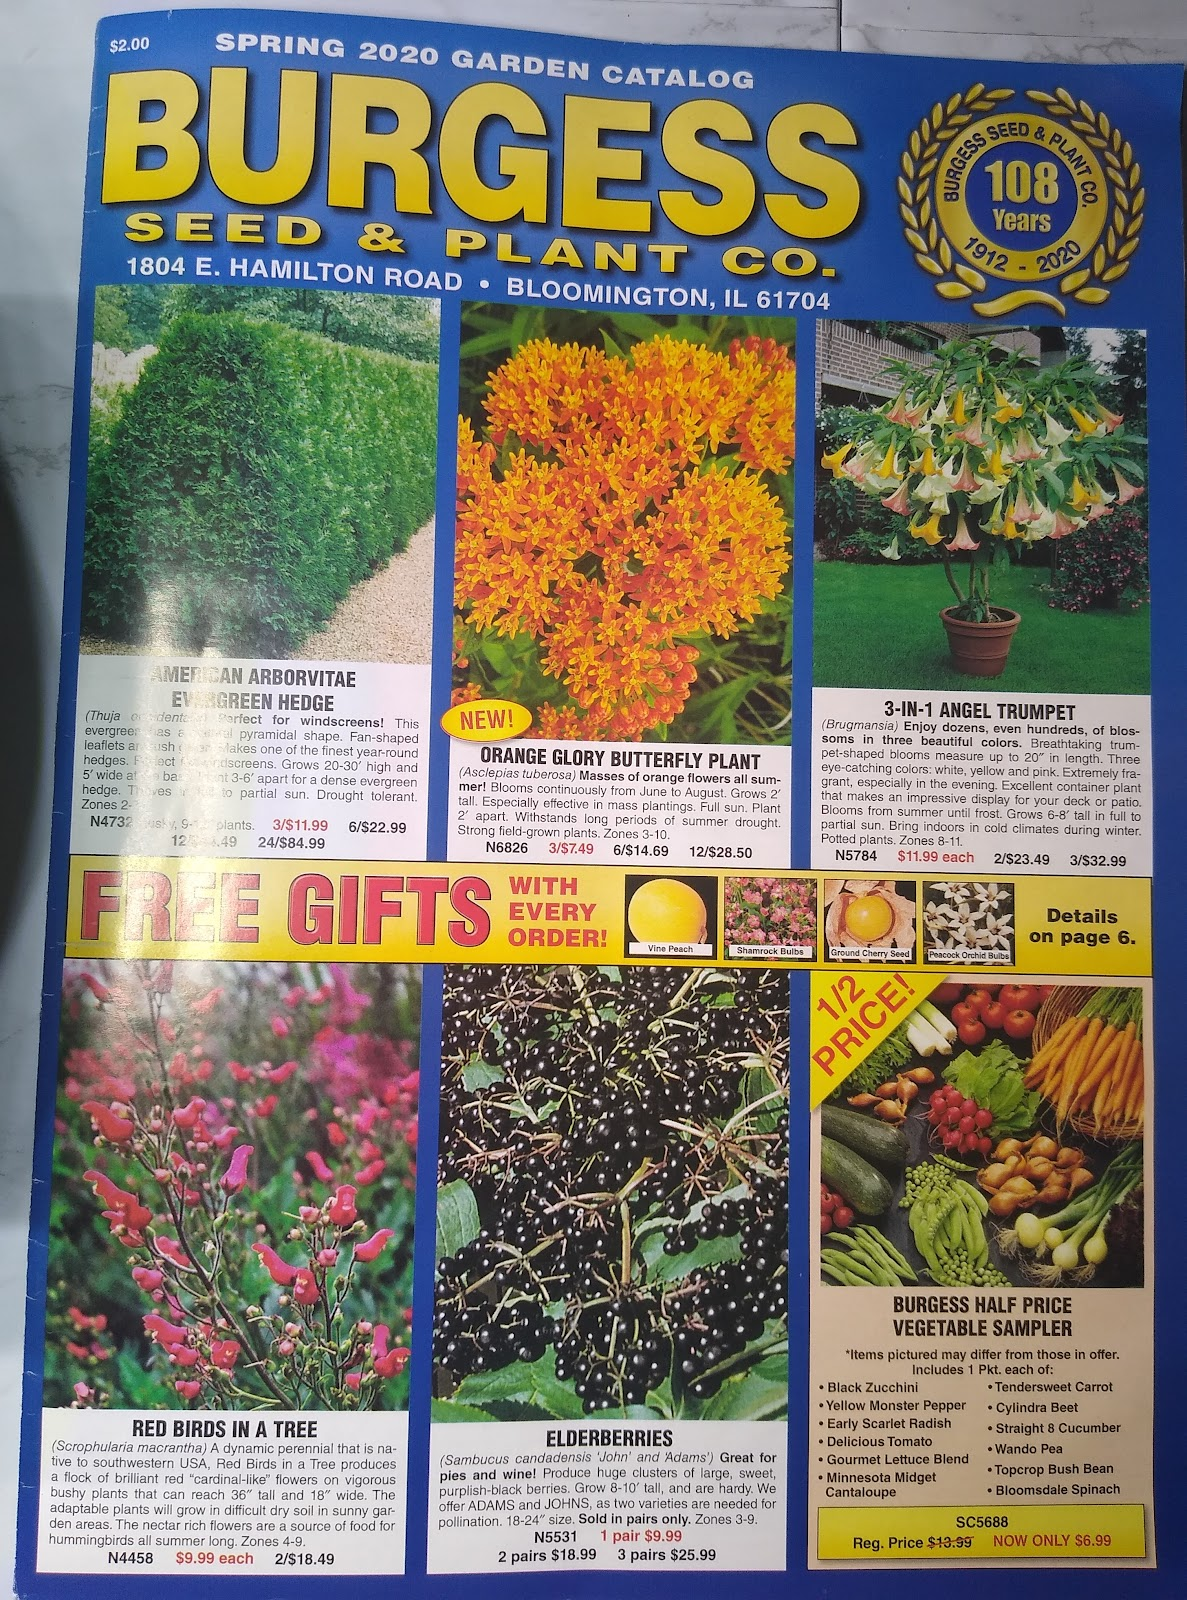 Burgess Seed & Plant Co. catalog picture